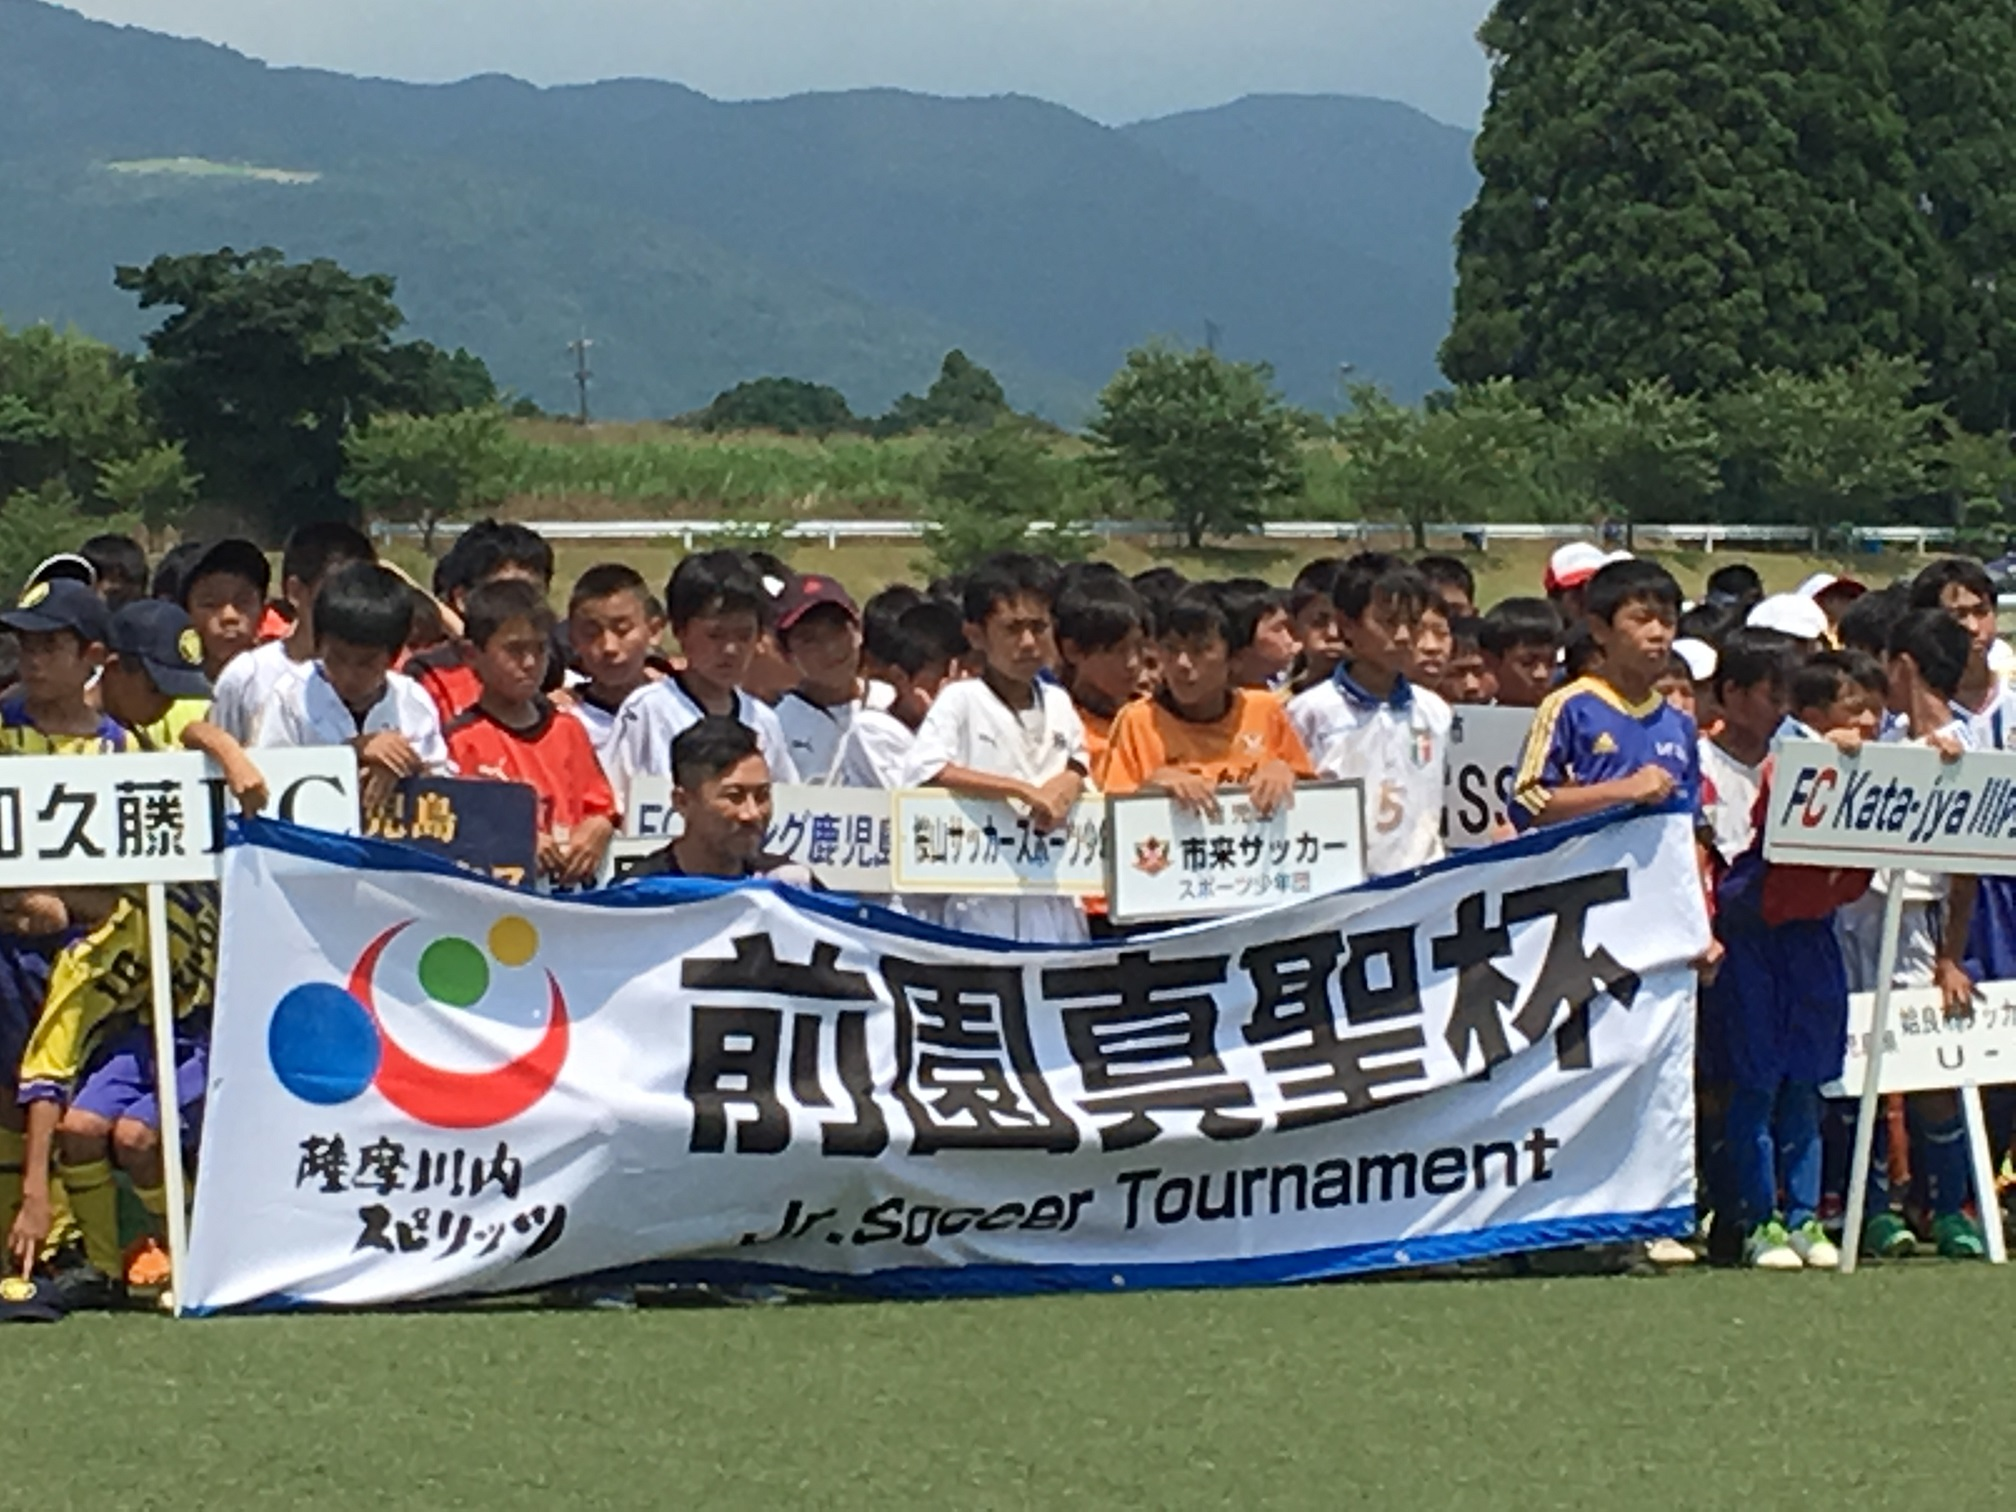 第2回 前園真聖杯 Jr.Soccer Tournament